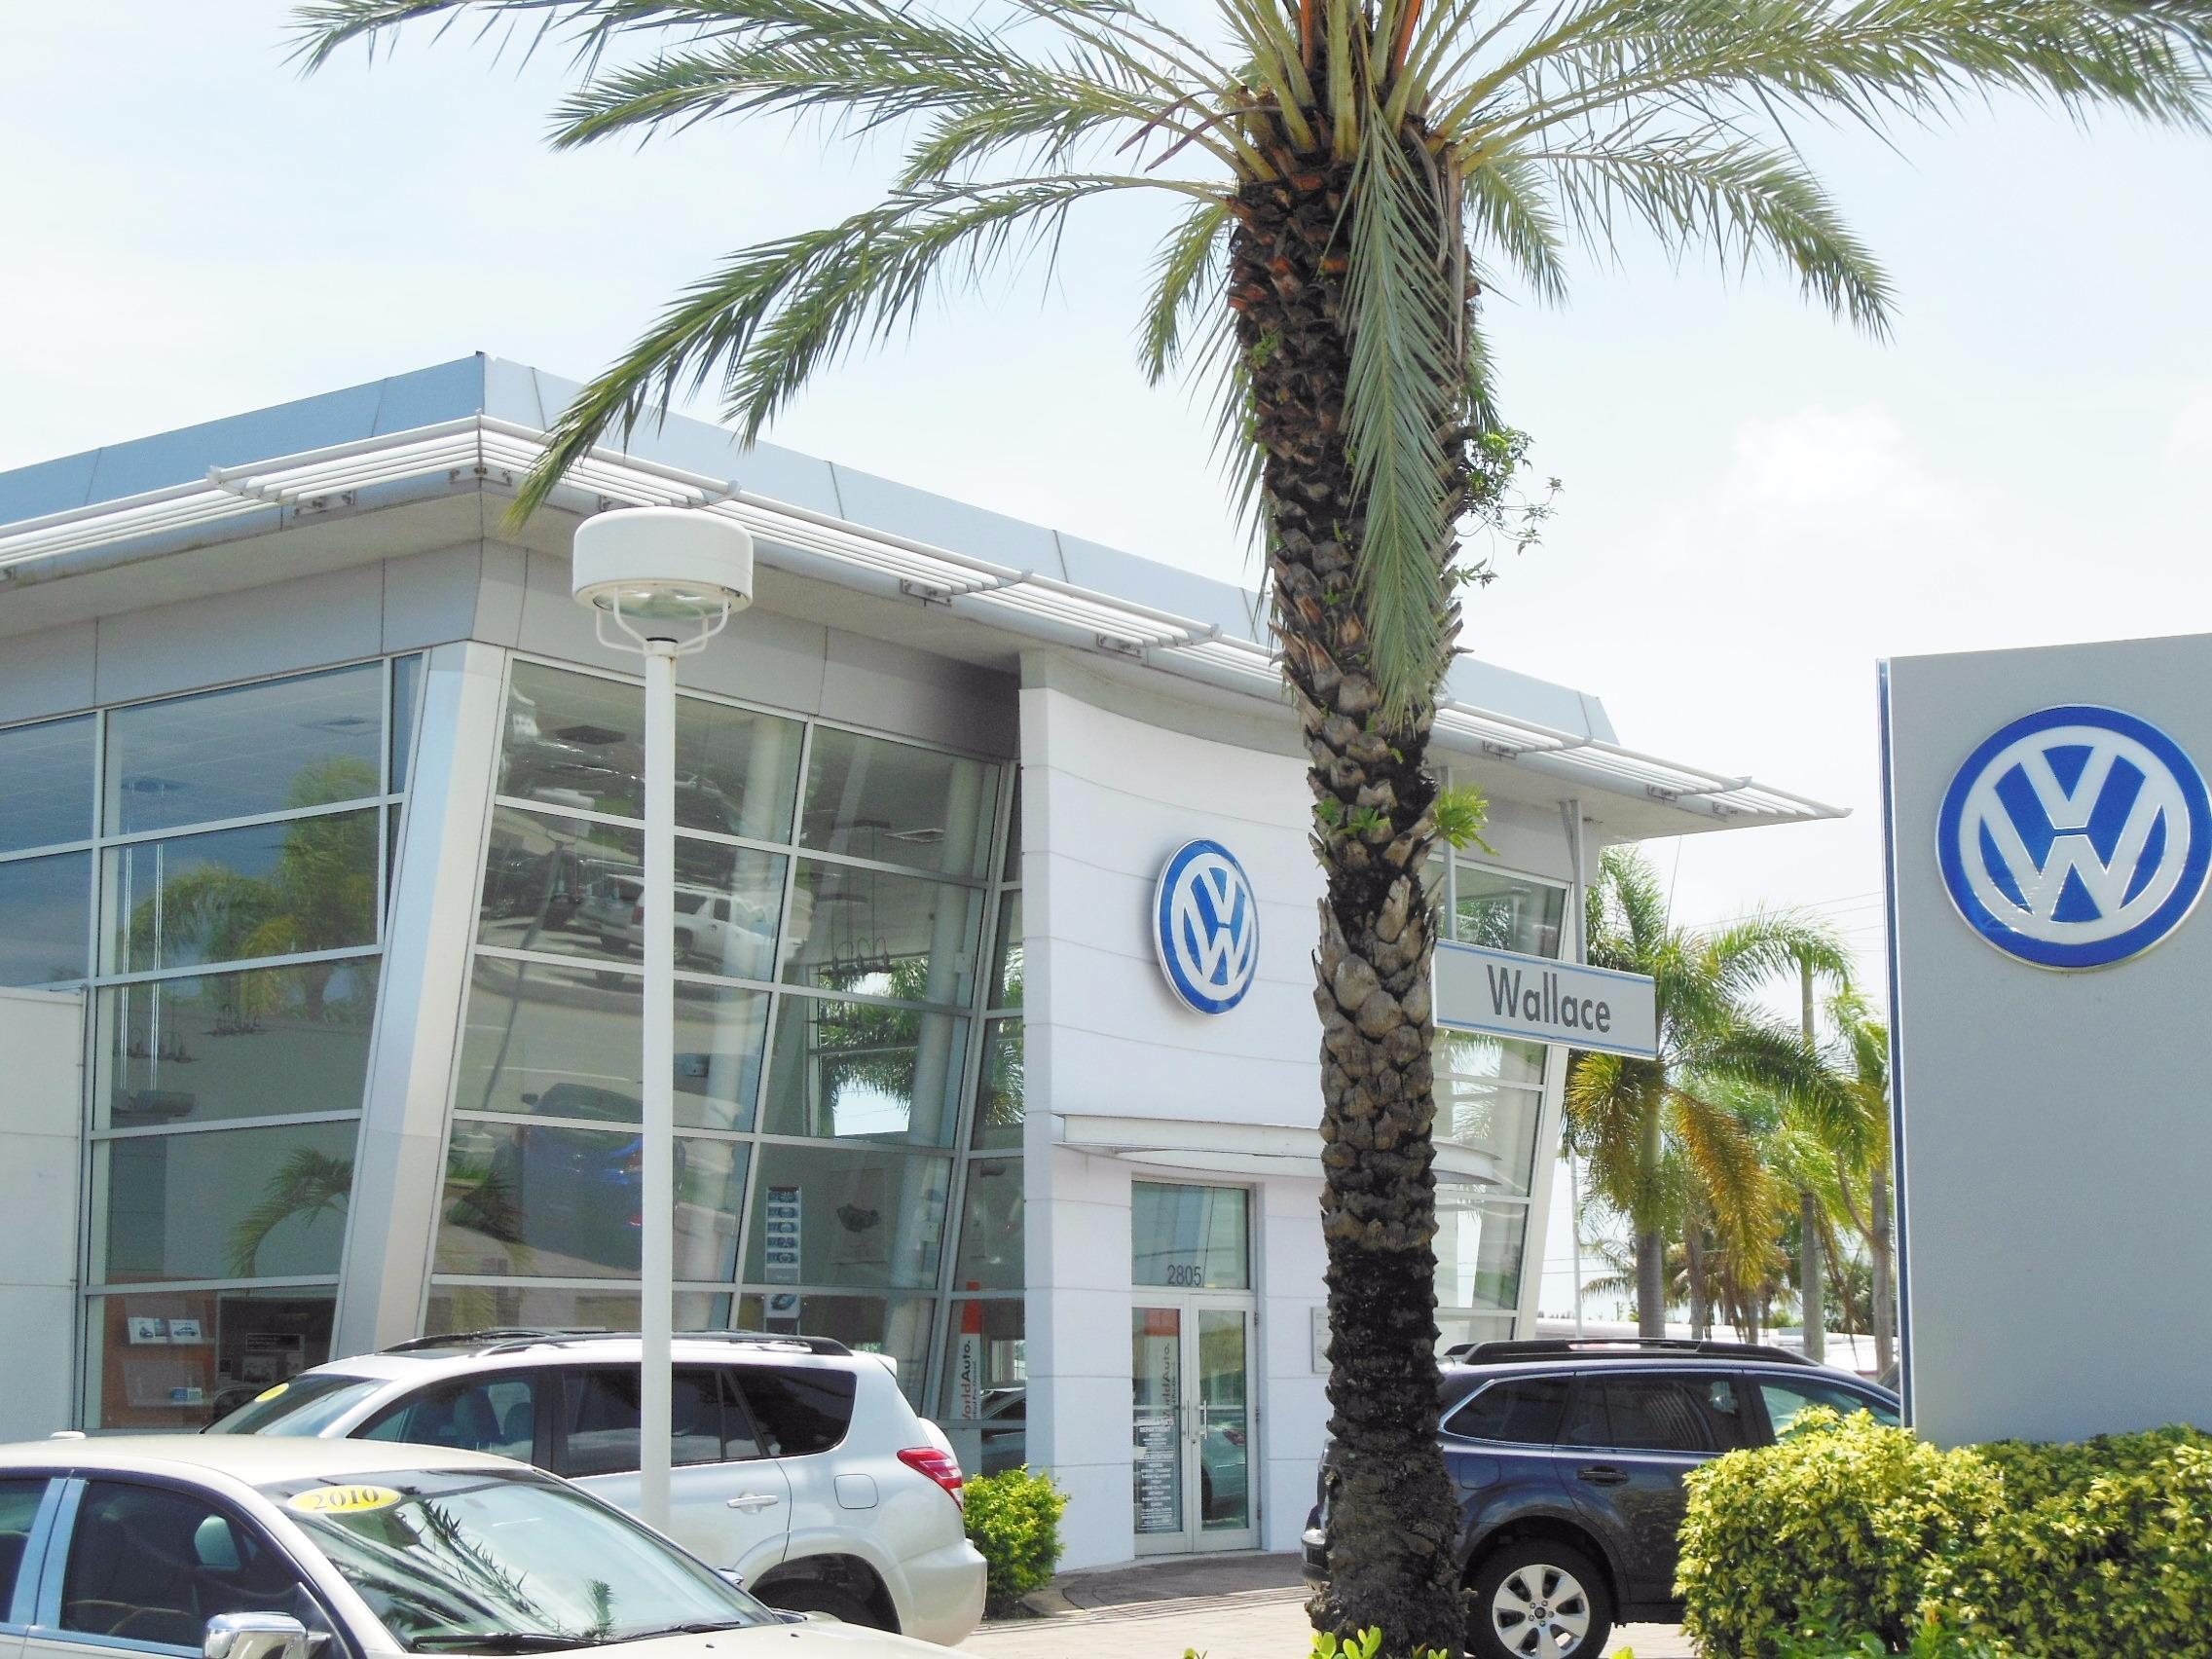 Wallace volkswagen in stuart fl 34994 for Wallace custom homes